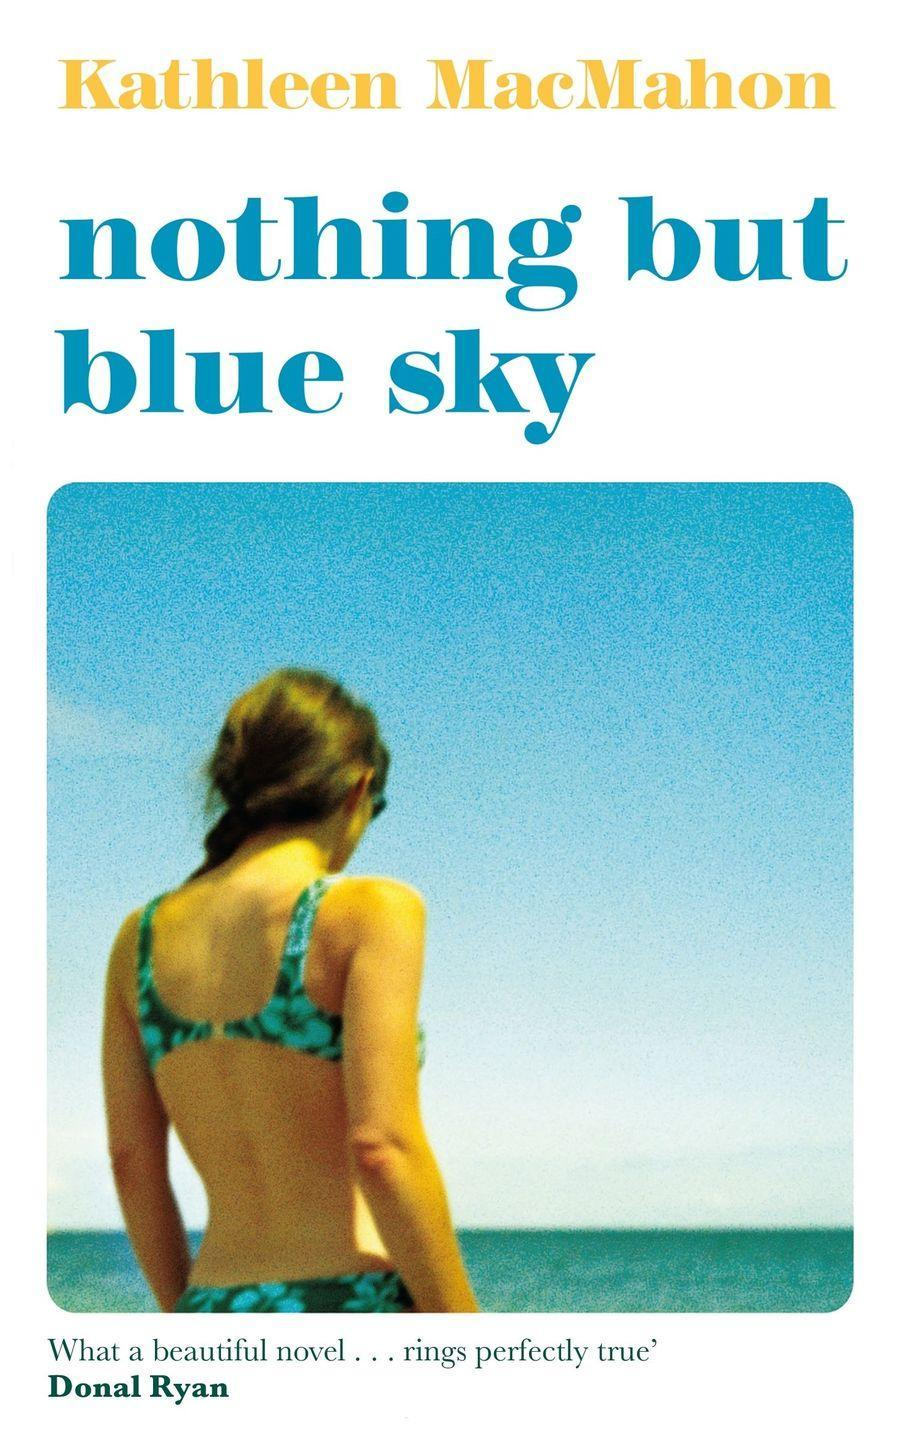 """<p>Kathleen MacMahon's third novel, Nothing But Blue Sky, is a smart and reflective look at a perfect marriage which isn't all that it seems.<br><br>""""[In] Nothing But Blue Sky by Kathleen MacMahon, widower David examines his relationship with his dead wife and their 20 year marriage. It's a story of grief and living life to the full."""" - Sarah-Jane Mee</p><p><a class=""""link rapid-noclick-resp"""" href=""""https://www.amazon.co.uk/Nothing-But-Blue-Kathleen-MacMahon/dp/1844884759?tag=hearstuk-yahoo-21&ascsubtag=%5Bartid%7C1927.g.35797924%5Bsrc%7Cyahoo-uk"""" rel=""""nofollow noopener"""" target=""""_blank"""" data-ylk=""""slk:SHOP NOW"""">SHOP NOW</a></p>"""